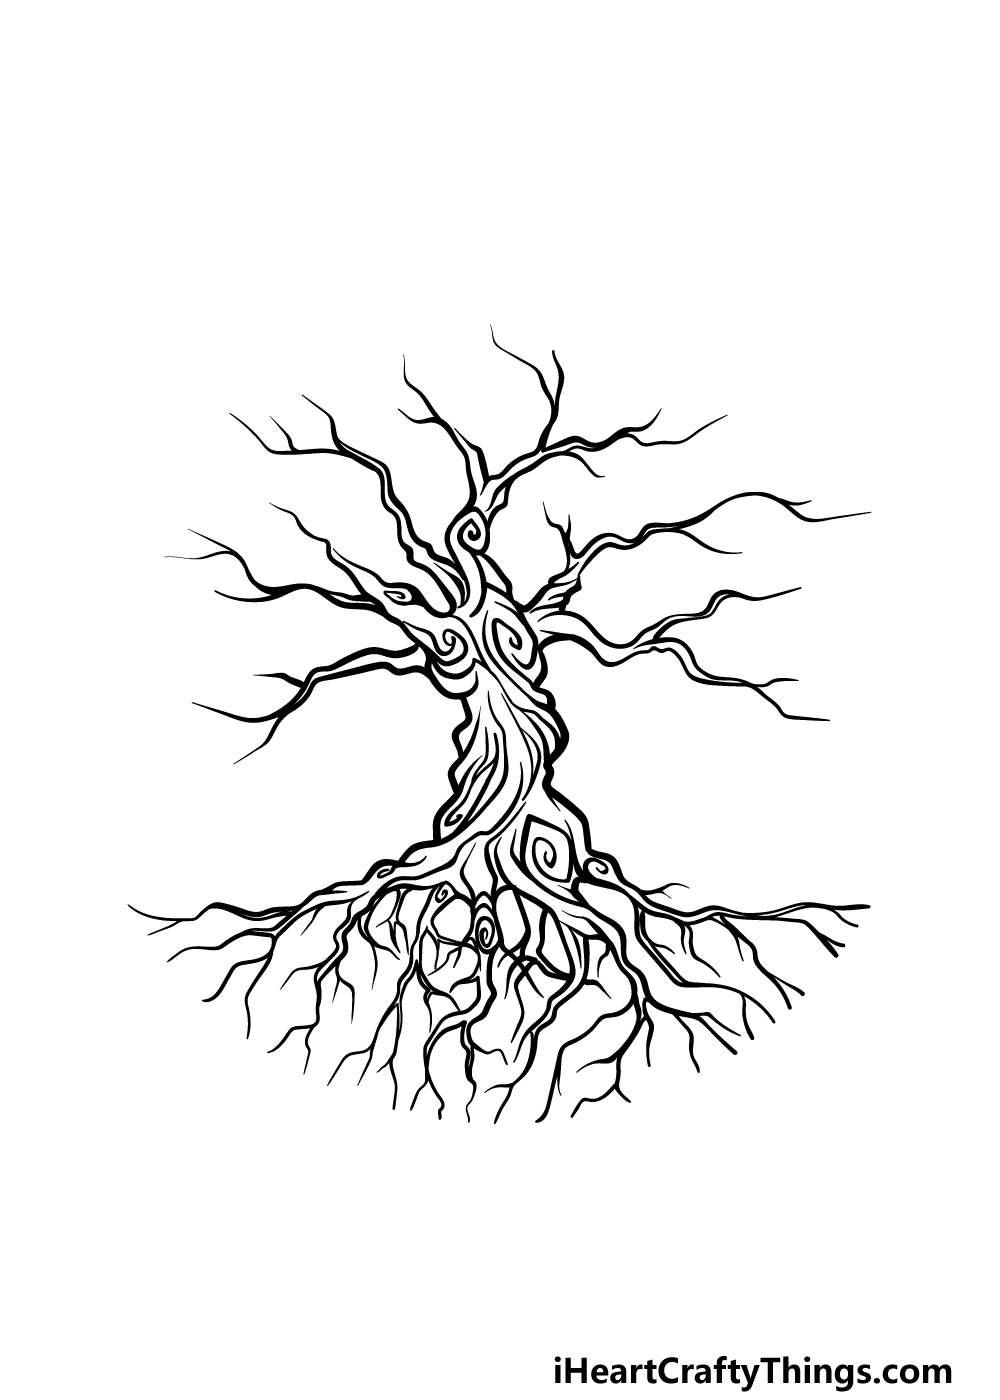 drawing the tree of life step 4